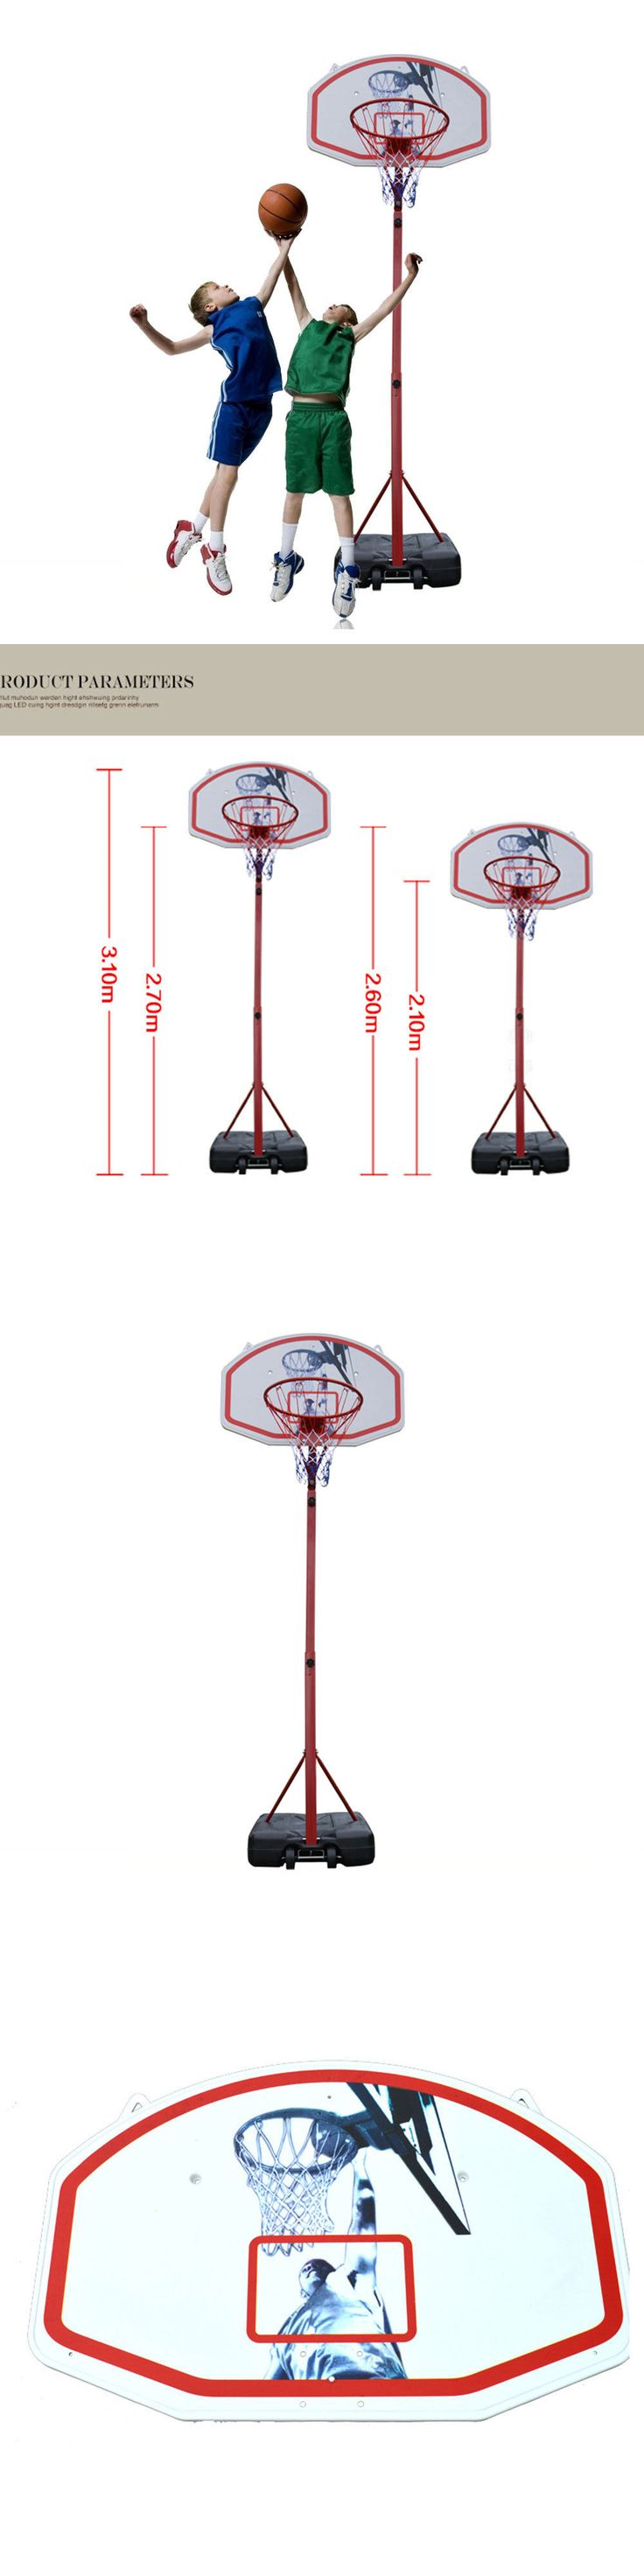 Backboard Systems 21196: Indoor Outdoor Sports Children Kids Youth Portable Basketball Hoop System Stand -> BUY IT NOW ONLY: $99.98 on eBay!